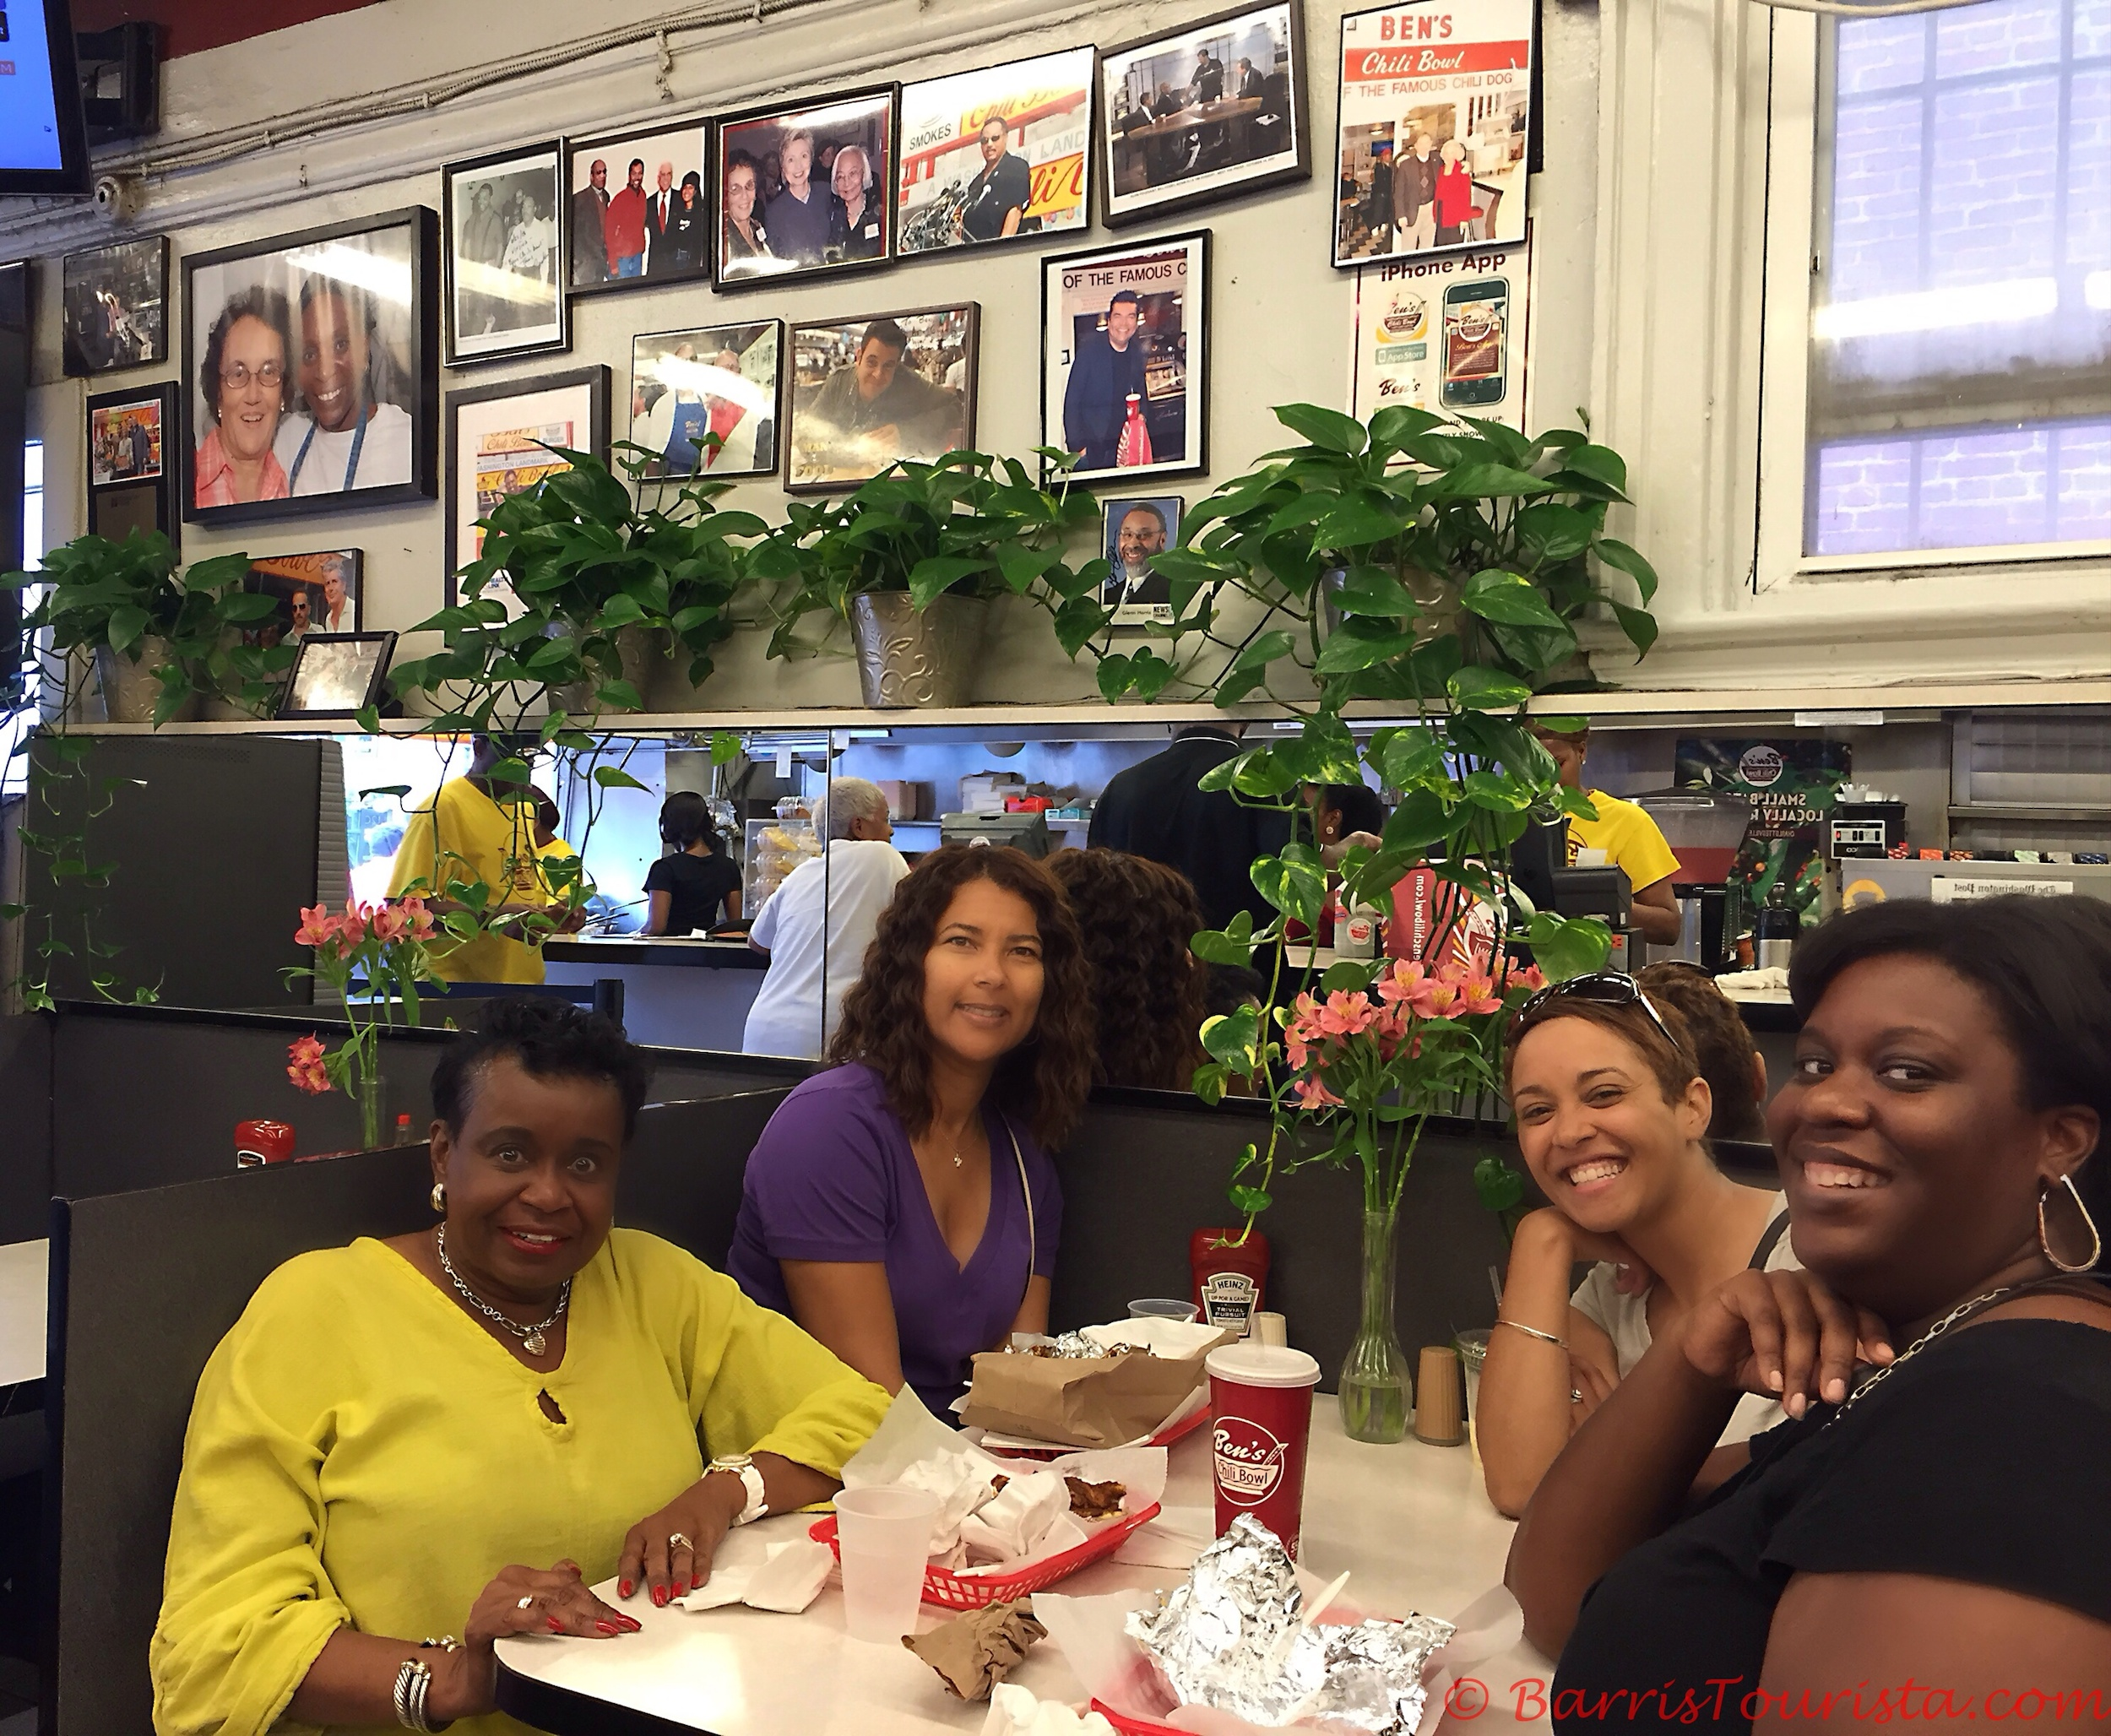 BarrisTourista-Ben's Chili Bowl 1